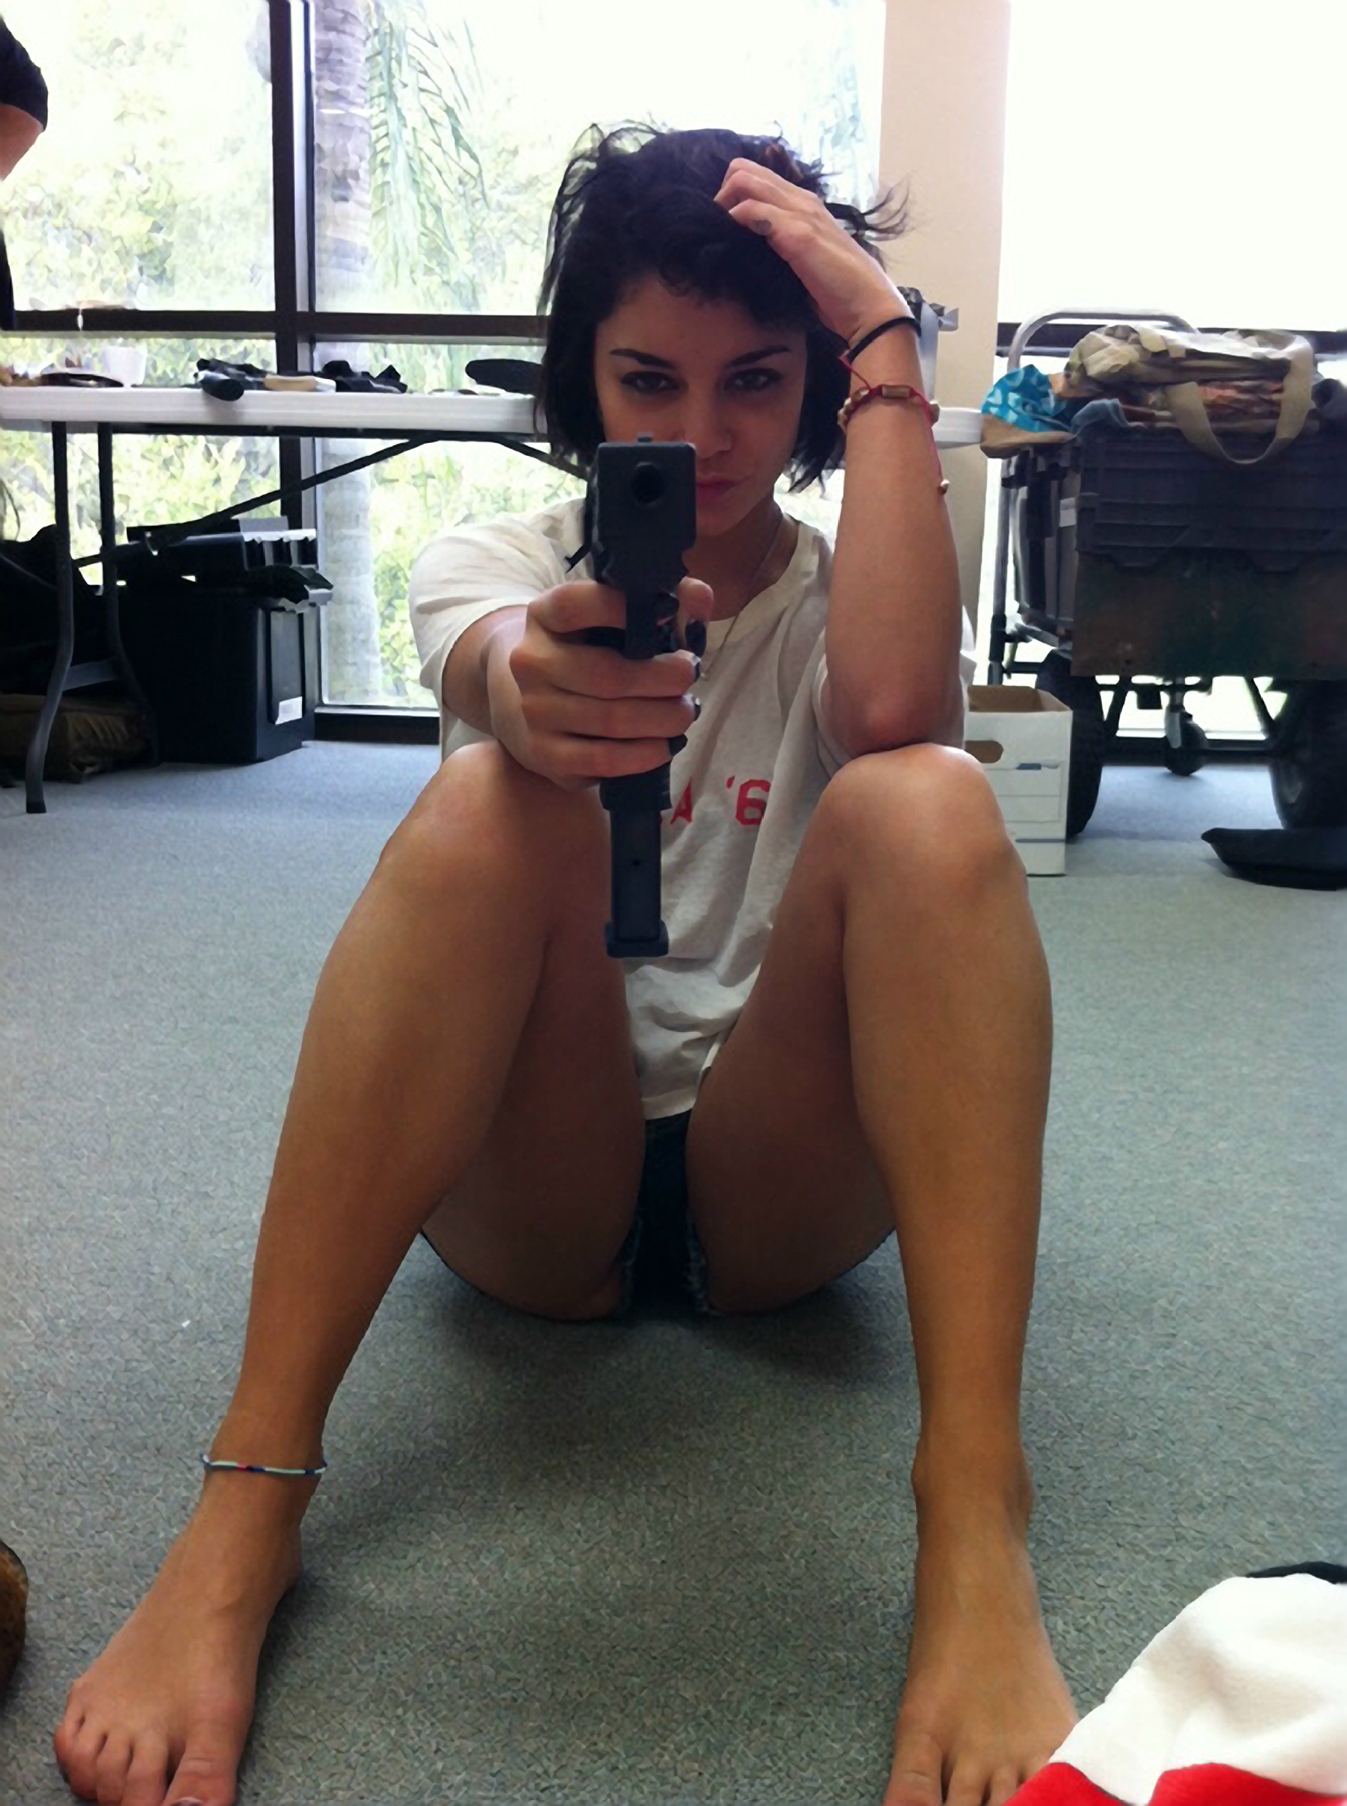 Vanessa Hudgens Bikini Pictures - You Must See This! PICS New Vanessa Hudgens Nude Cell Phone Pics Leaked